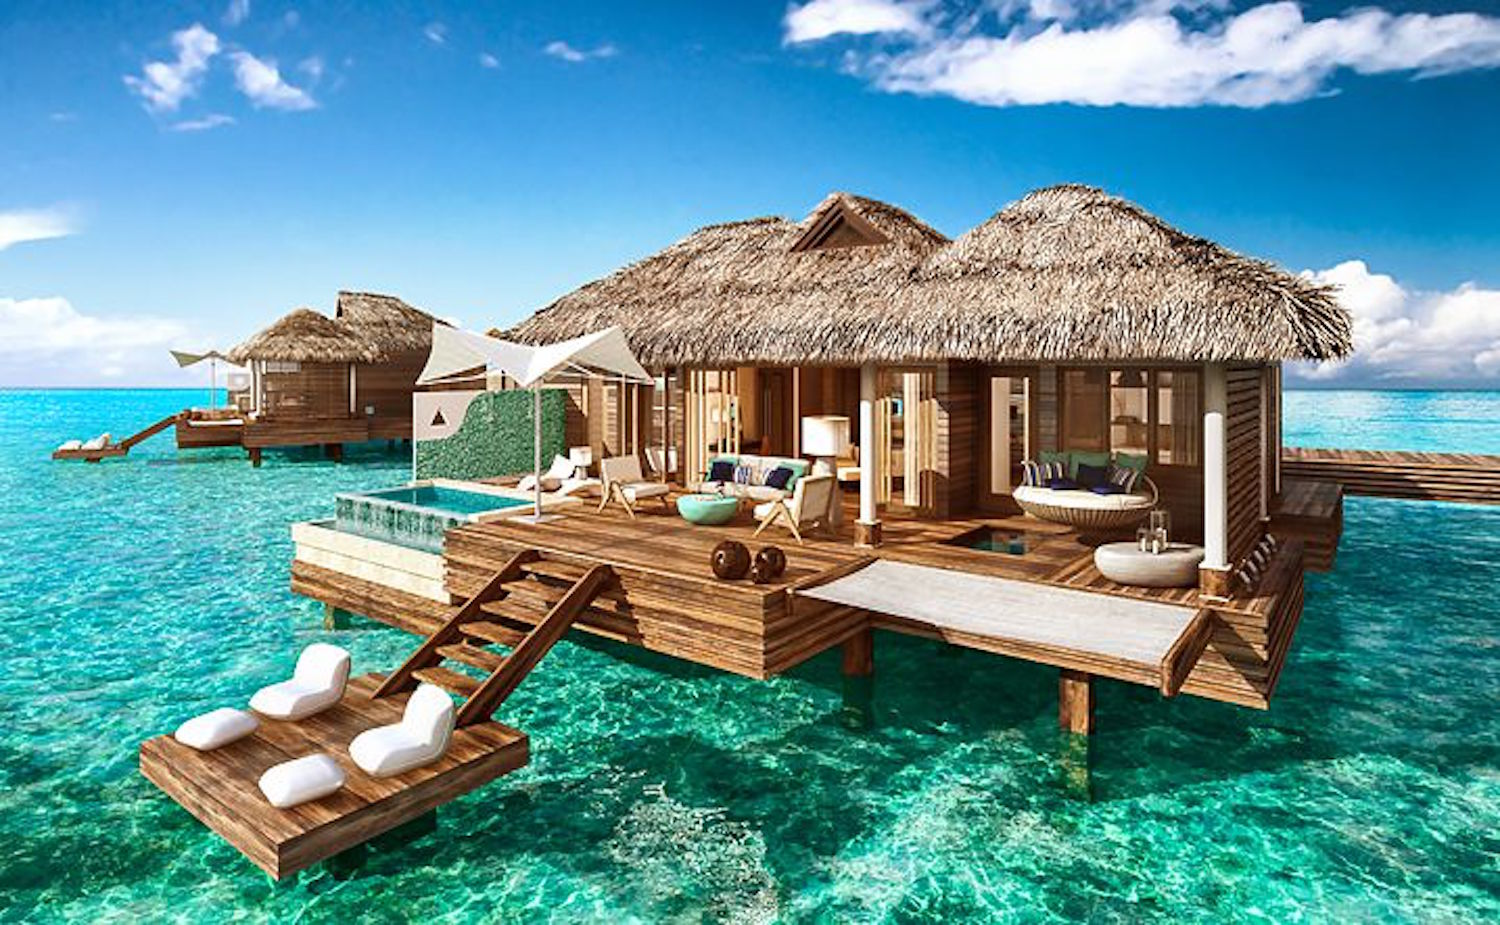 These Over The Water Villas Are A First Of Its Kind In Caribbean Complete With Private Infinity Pool Reminiscent Tahiti Style Bungalow